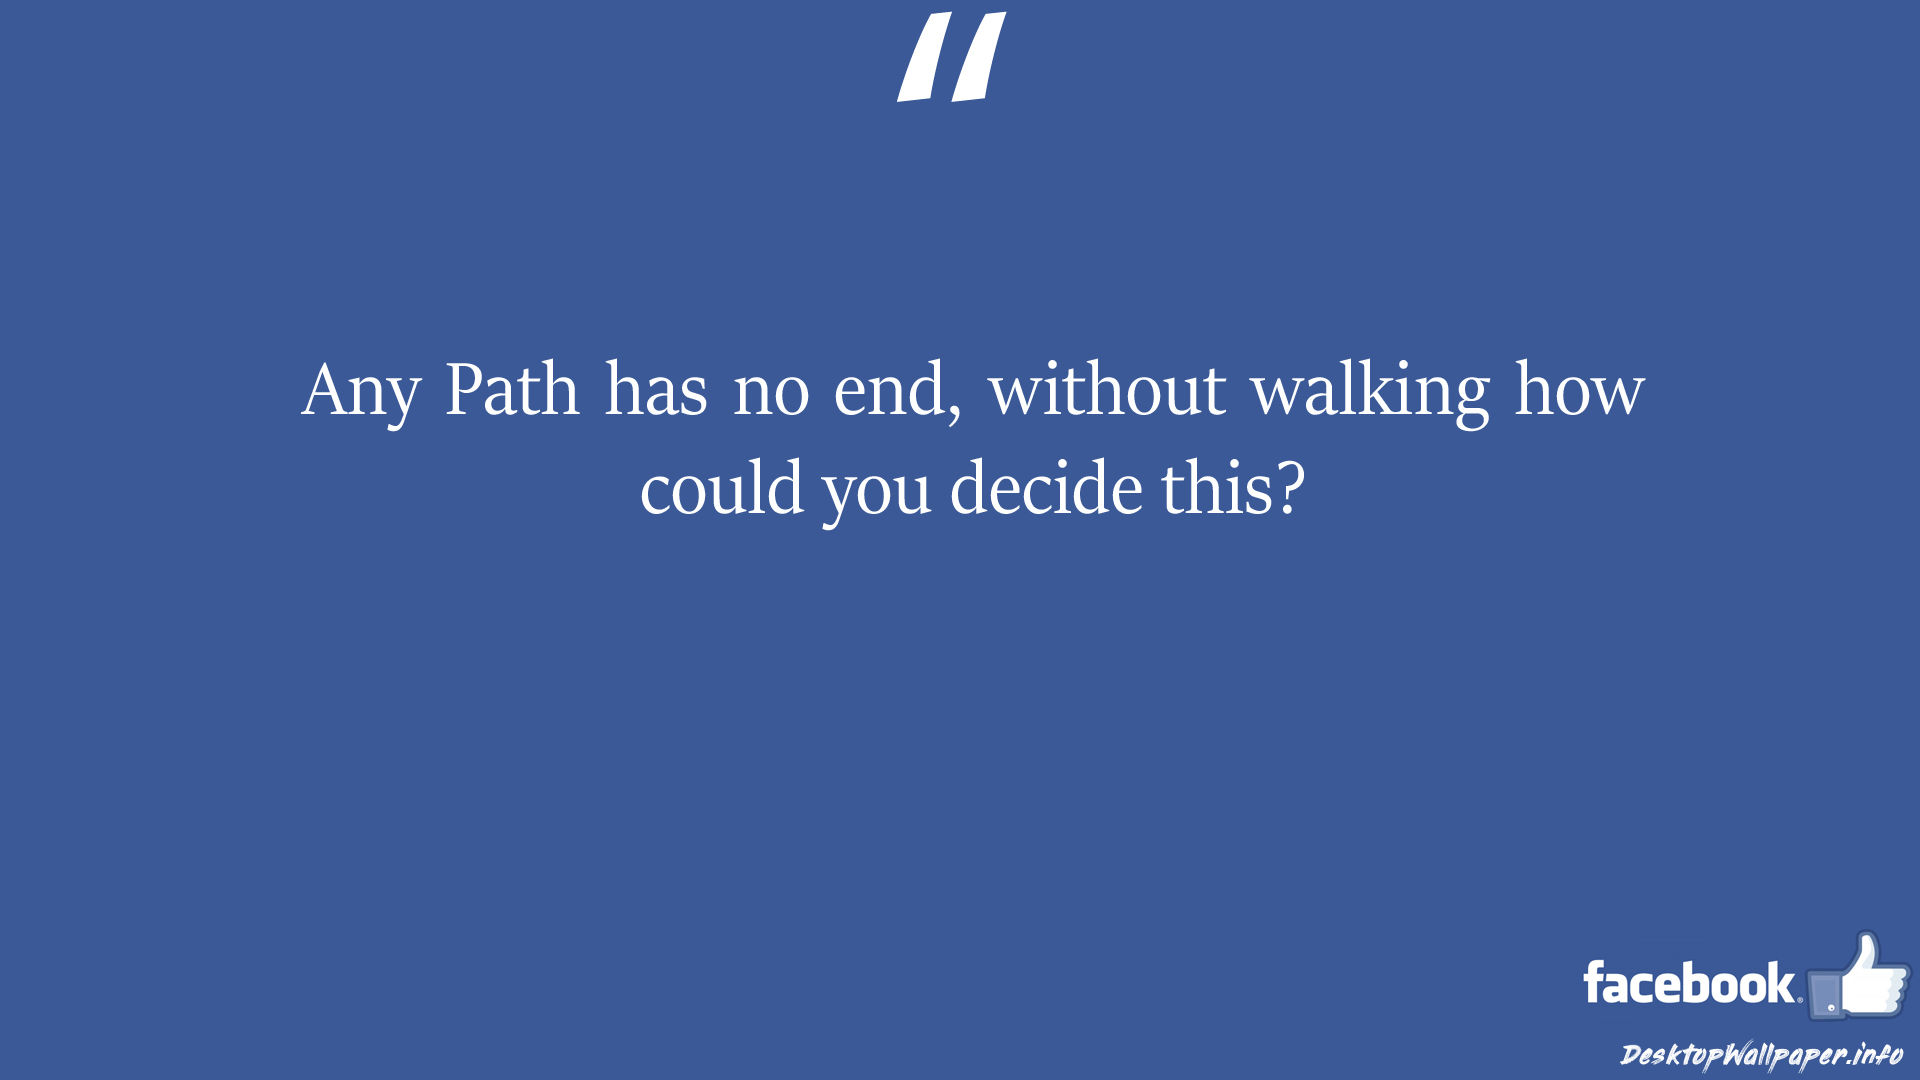 Any Path has no end without walking how could you decide facebook status